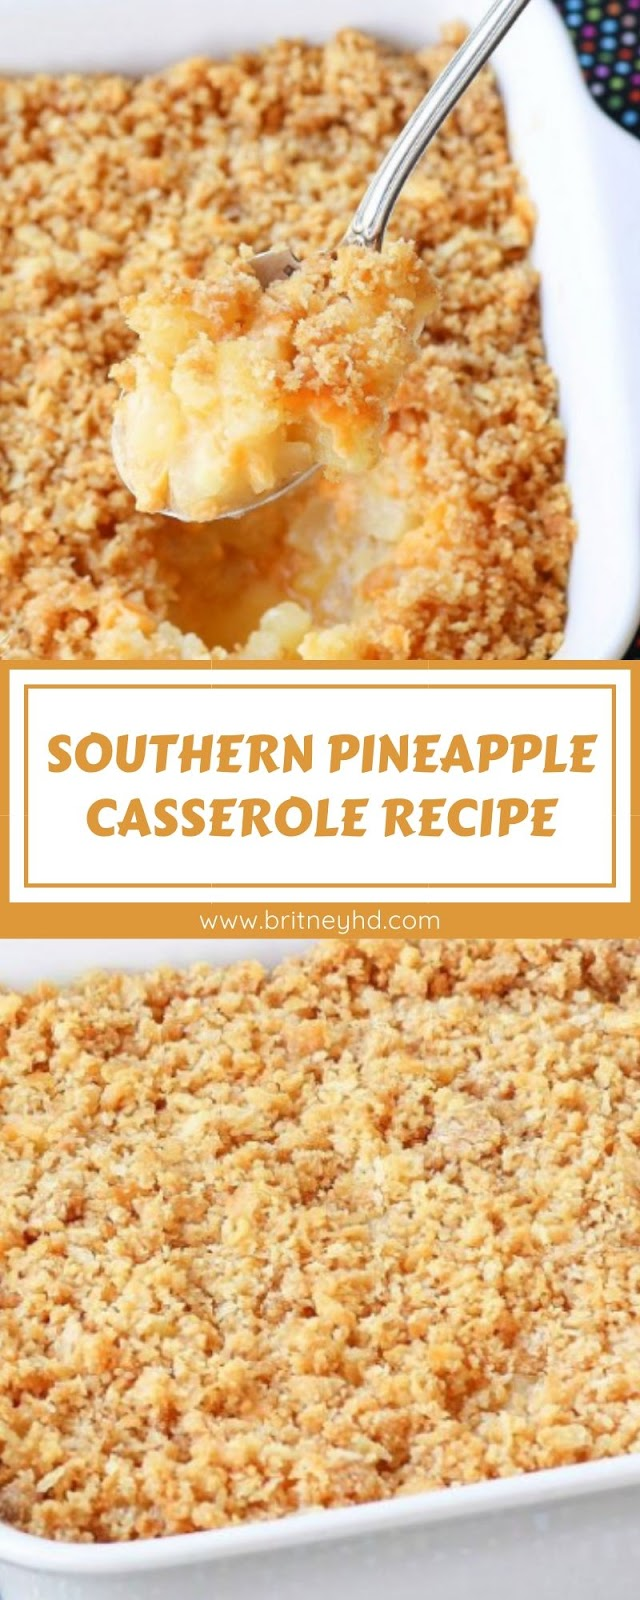 SOUTHERN PINEAPPLE CASSEROLE RECIPE